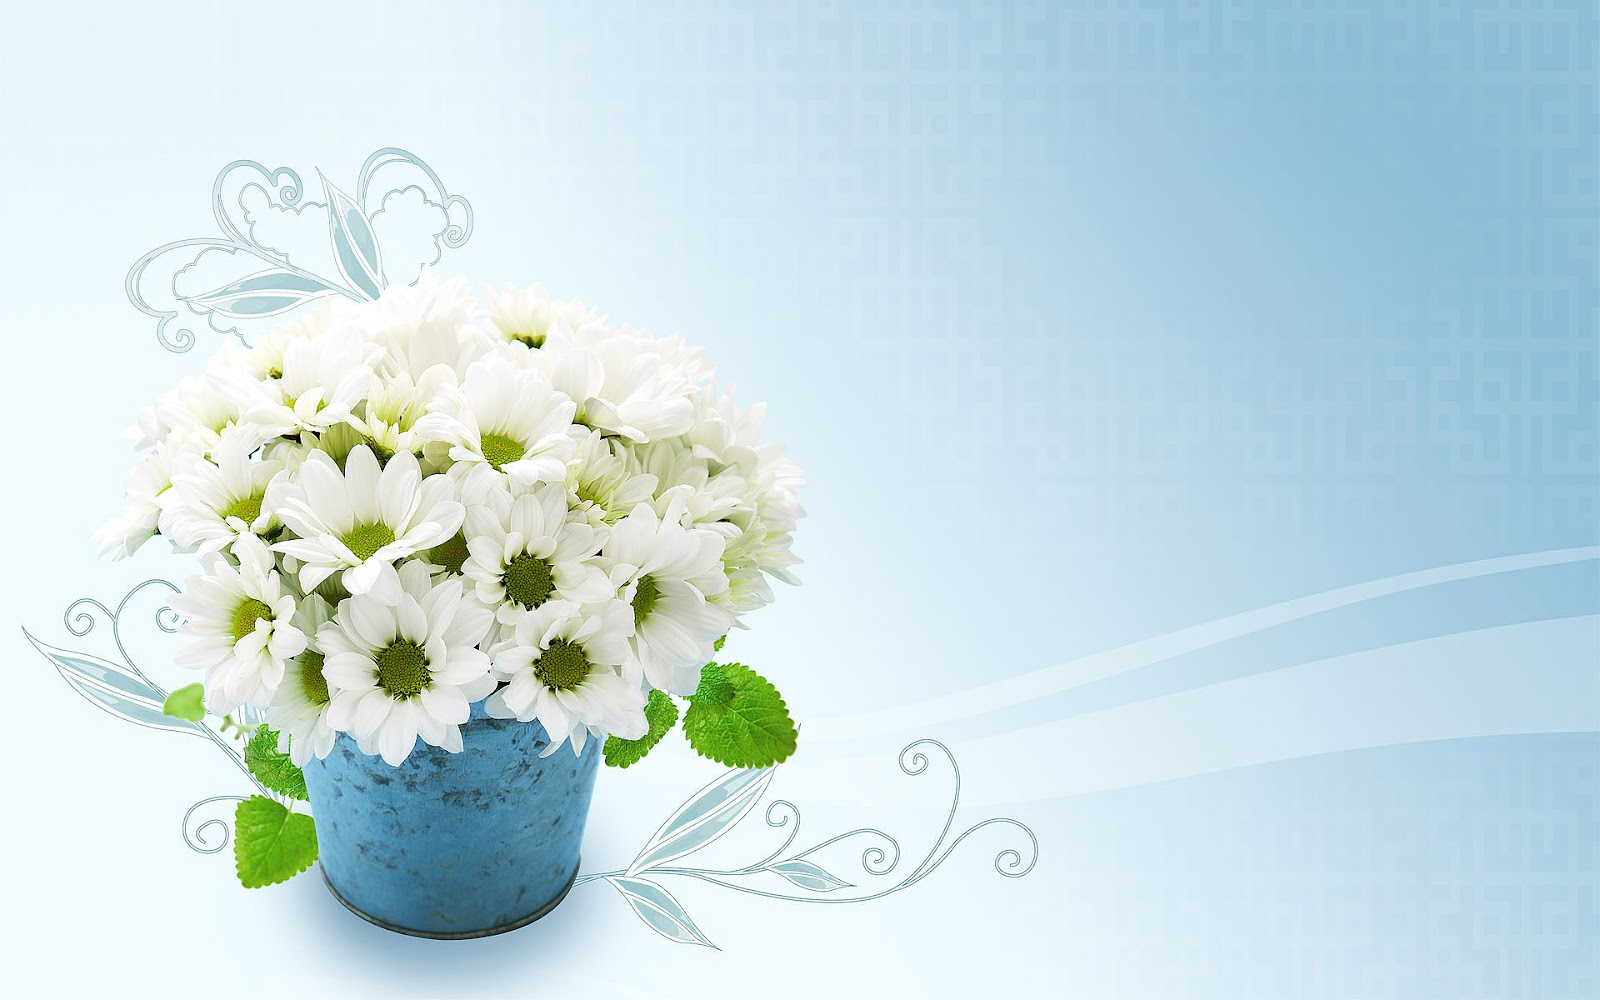 Flowers Wallpapers   Flowers Backgrounds | Top Wallpapers | Free Wallpaper